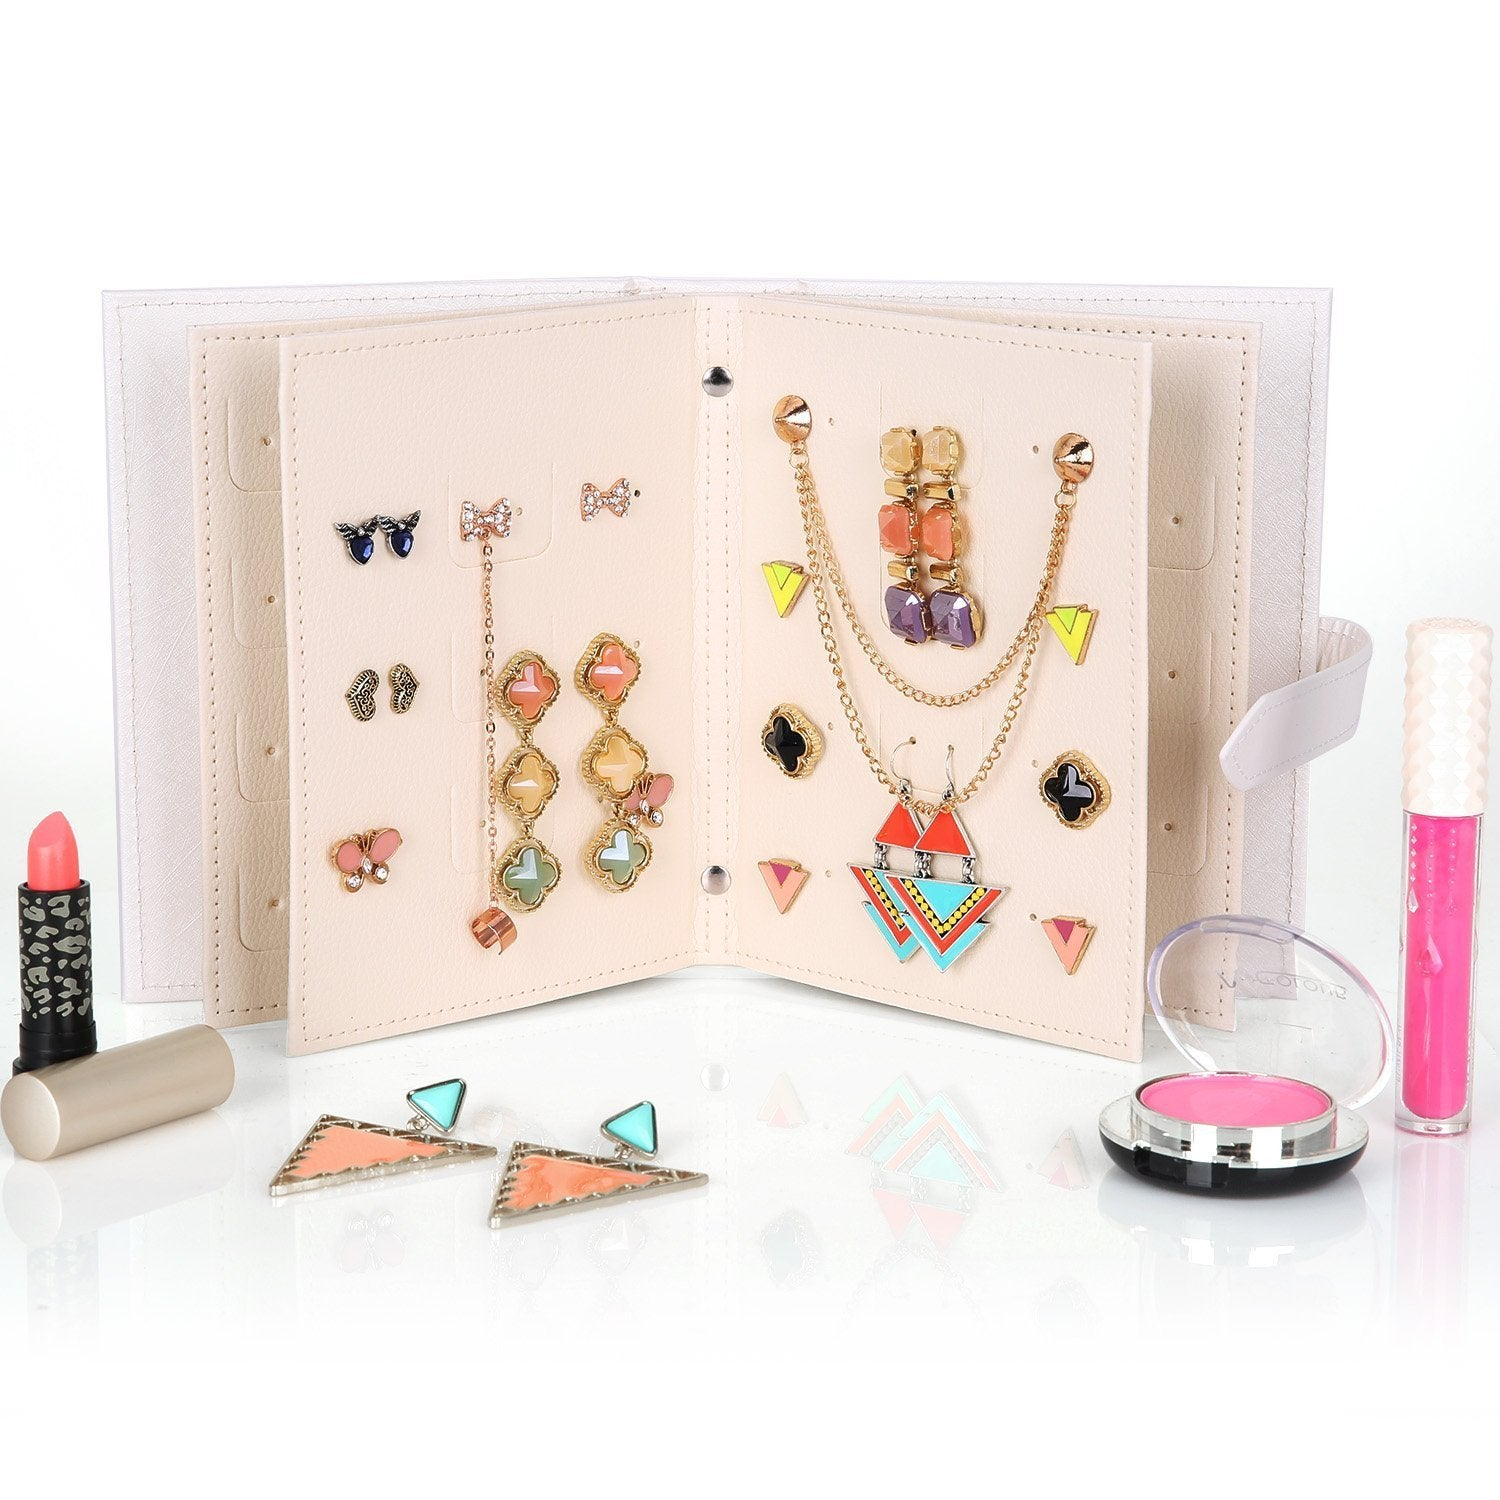 [80% OFF] 2019 NEW YEAR special price Earring storage album